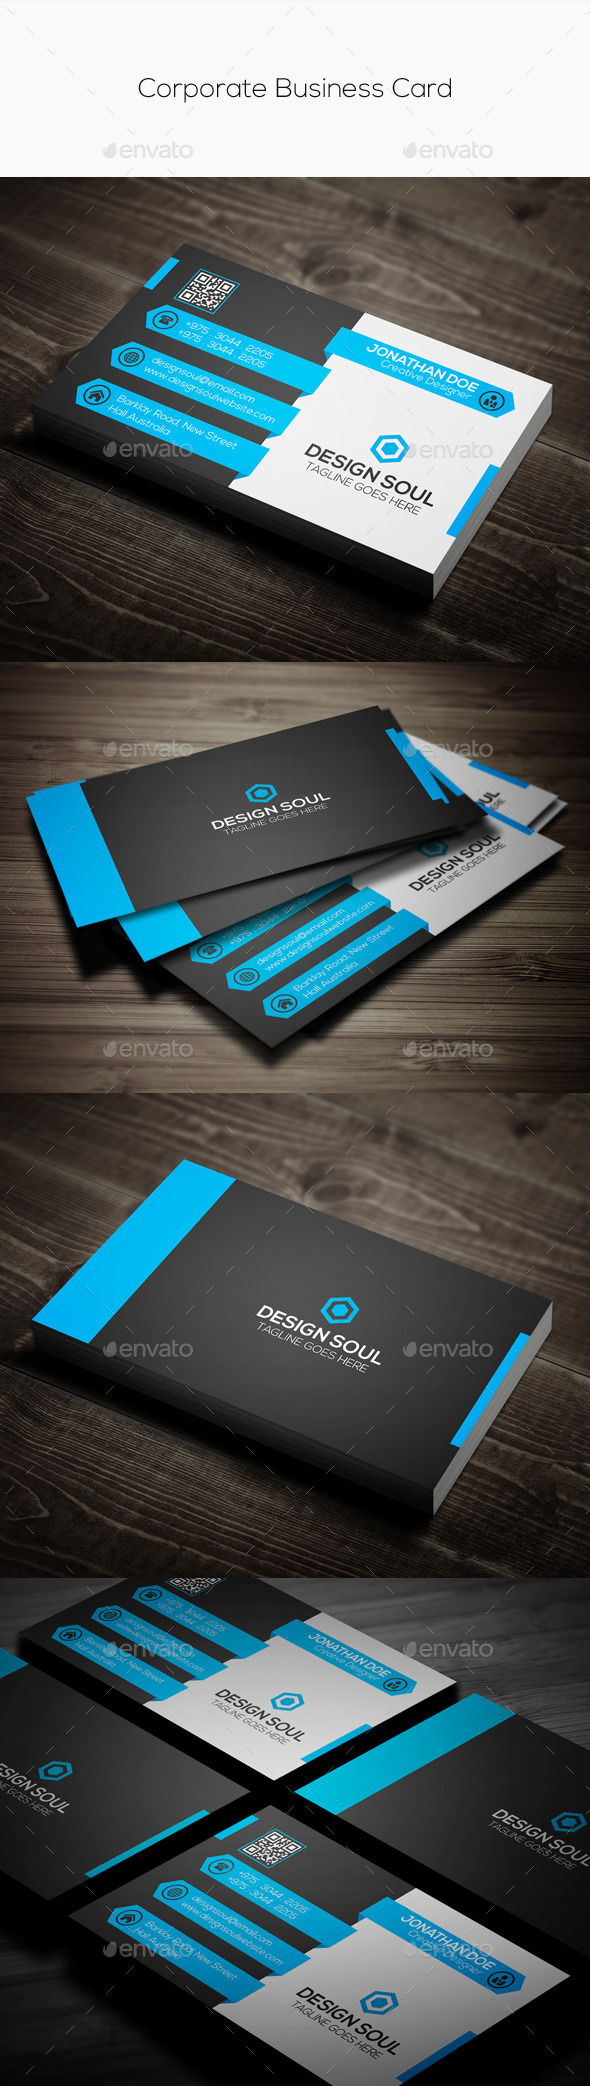 GraphicRiver Corporate Business Card 10909217